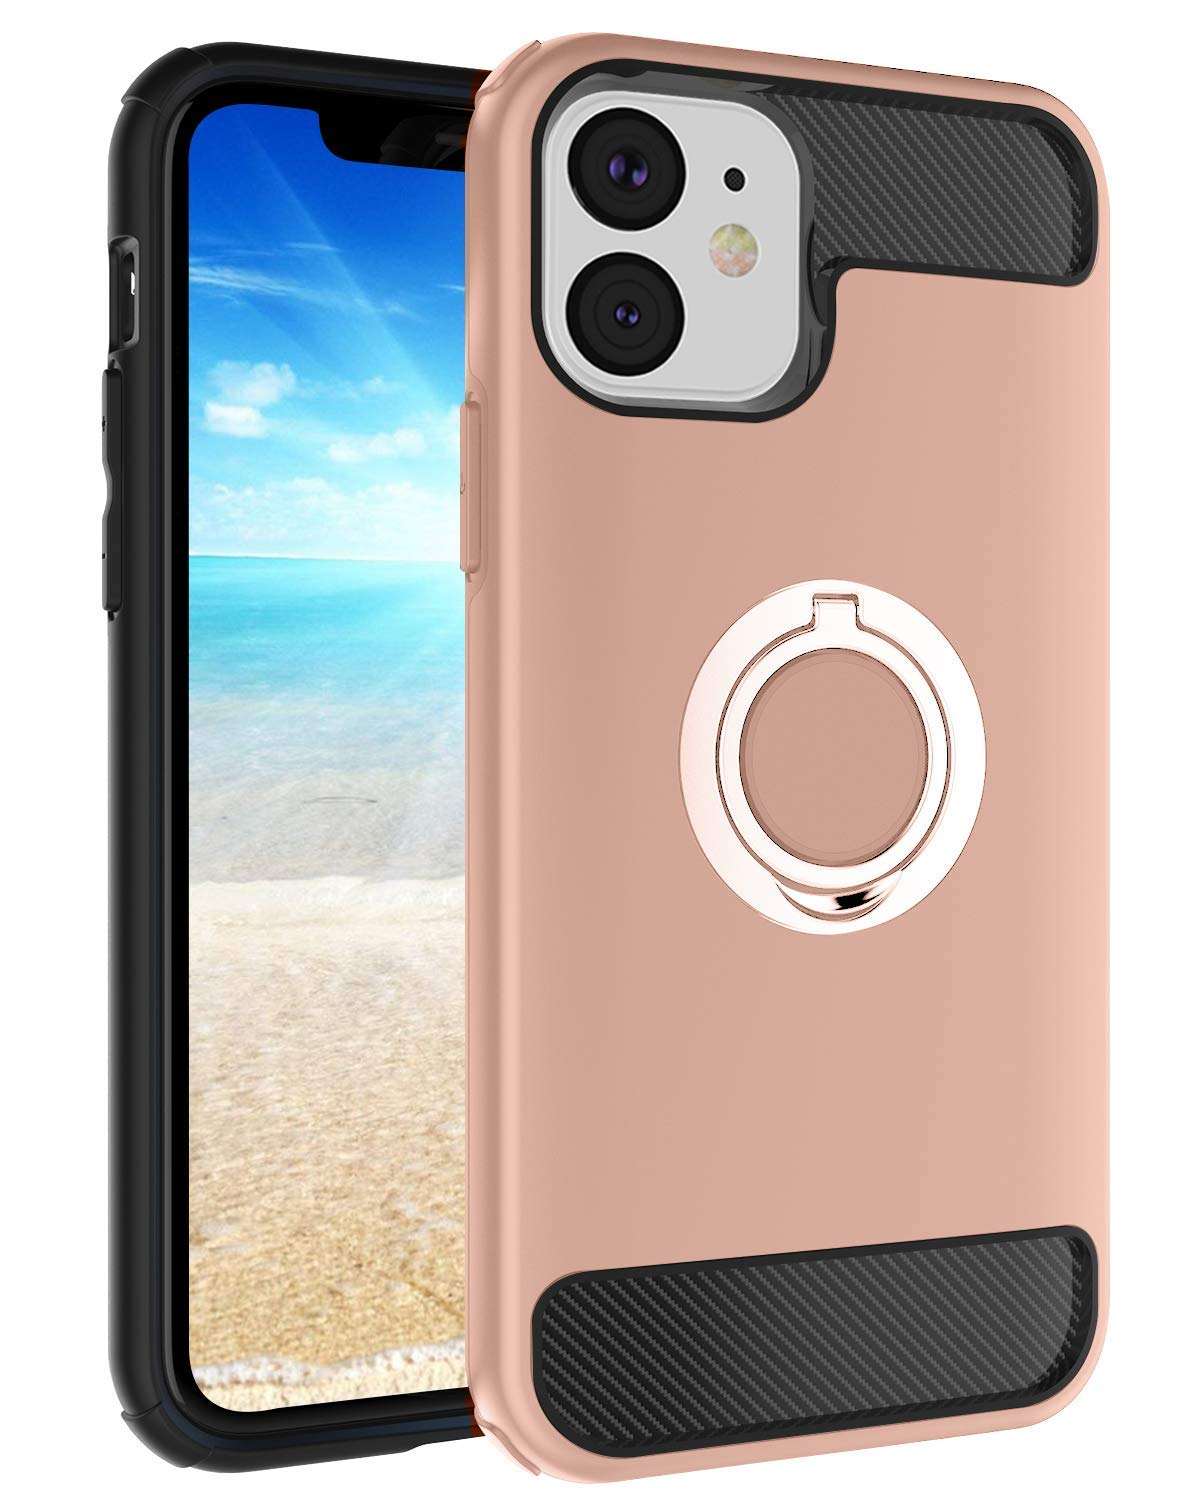 """Lintelek iPhone 11 Series Phone Case, Soft Liquid Silicone iPhone Case, Protective Cover Shockproof Bumper Case for iPhone 11 Pro 5.8"""" (Rose)"""